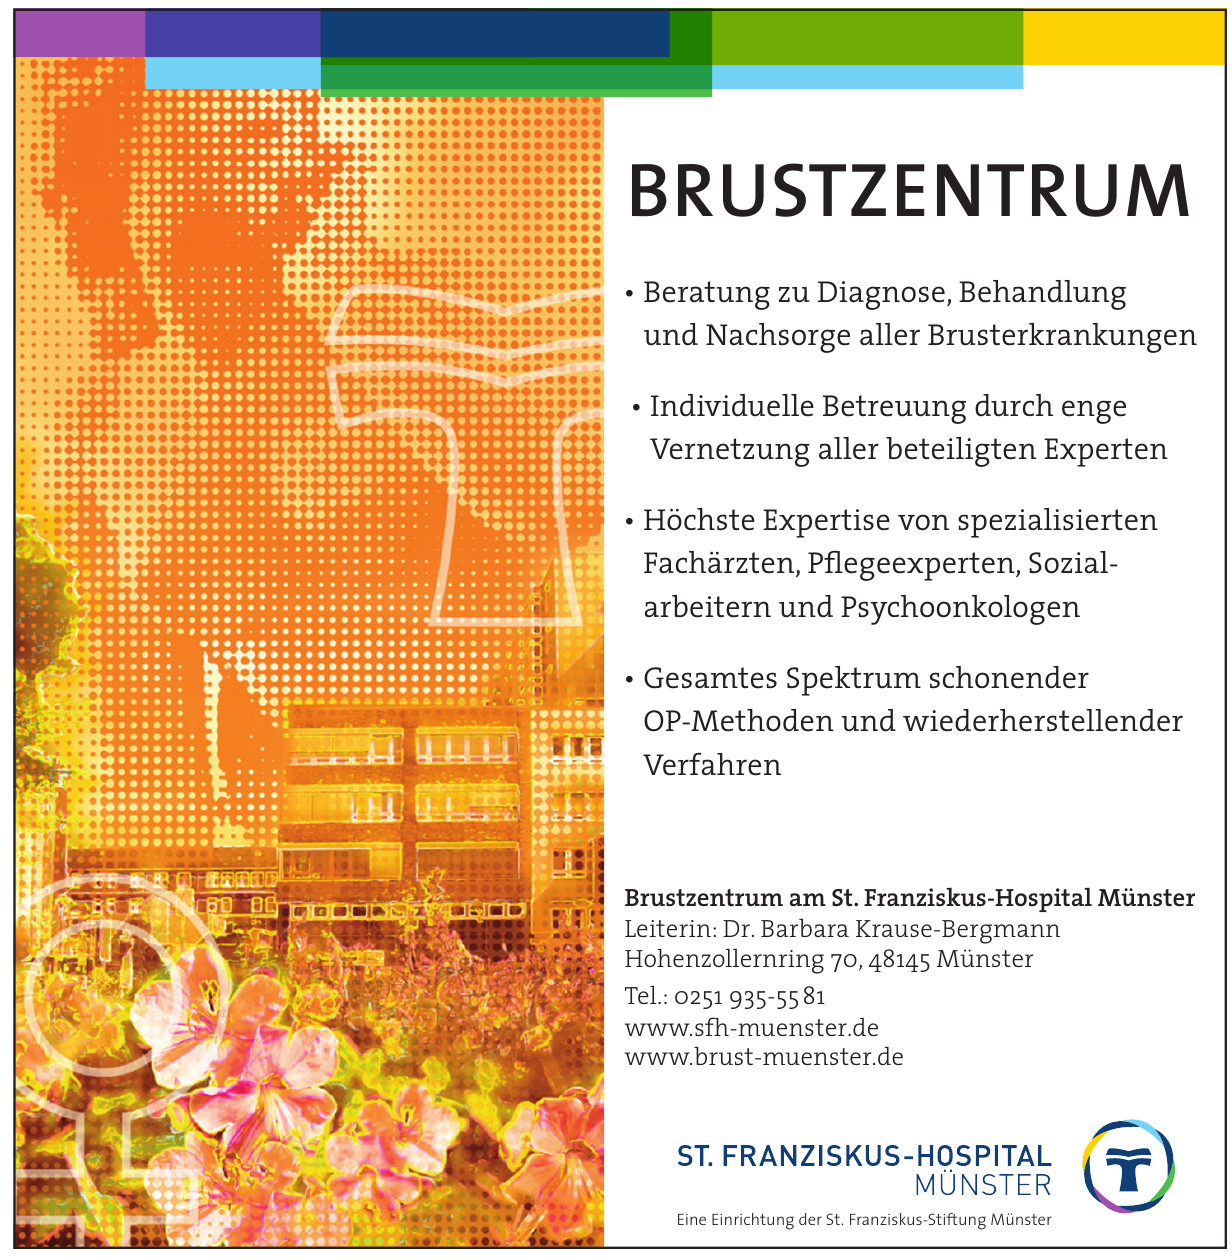 Brustzentrum am St. Franziskus-Hospital Münster